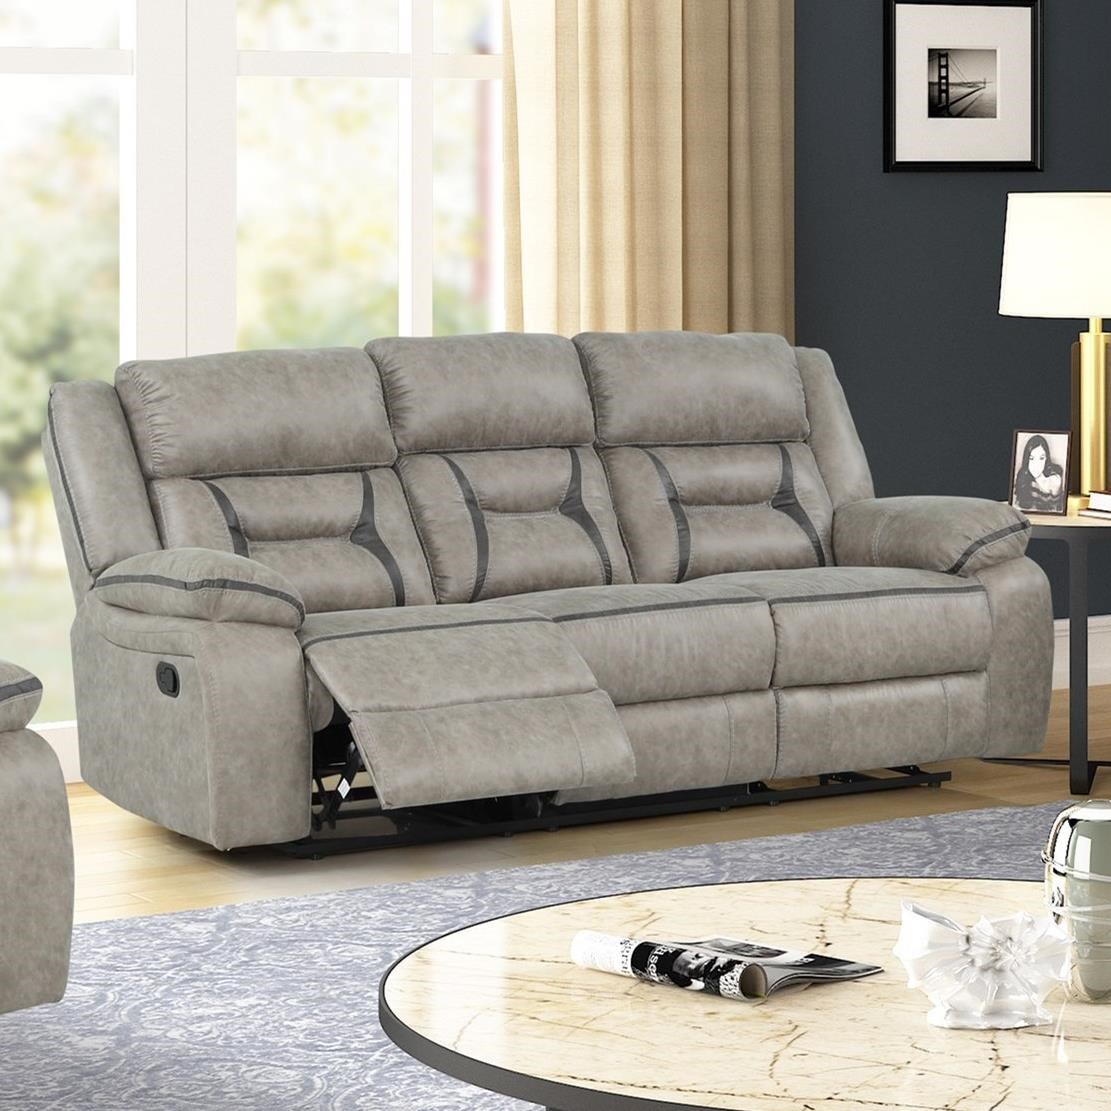 Roswell Reclining Sofa by New Classic at Wilcox Furniture